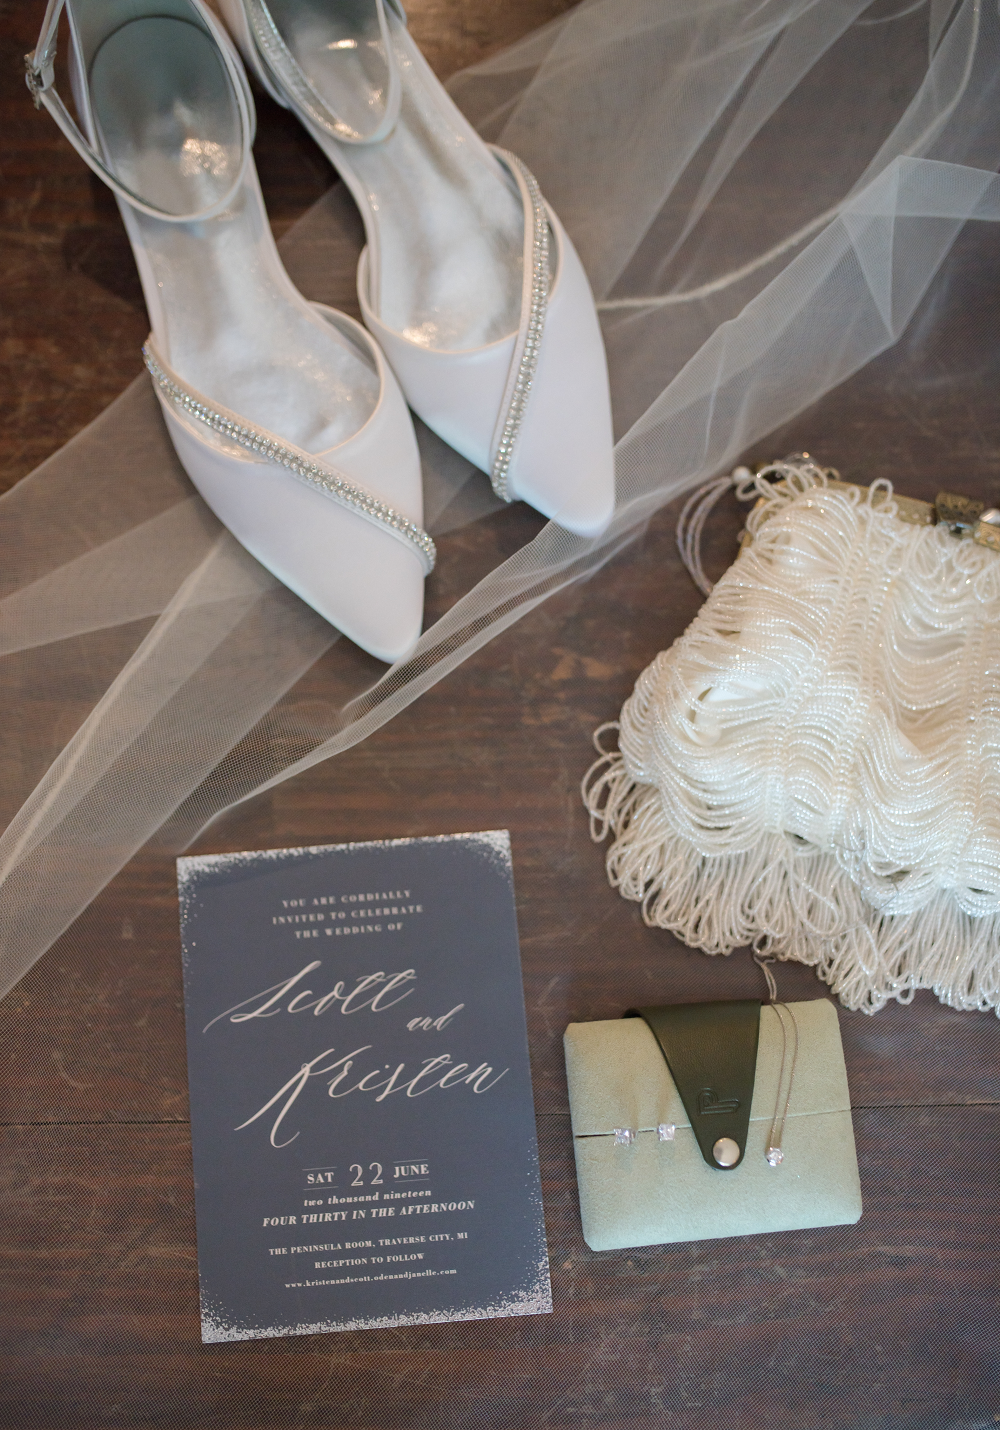 DESTINATION WEDDING IN TRAVERSE CITY WITH KRISTEN AND SCOTT Wedding Details